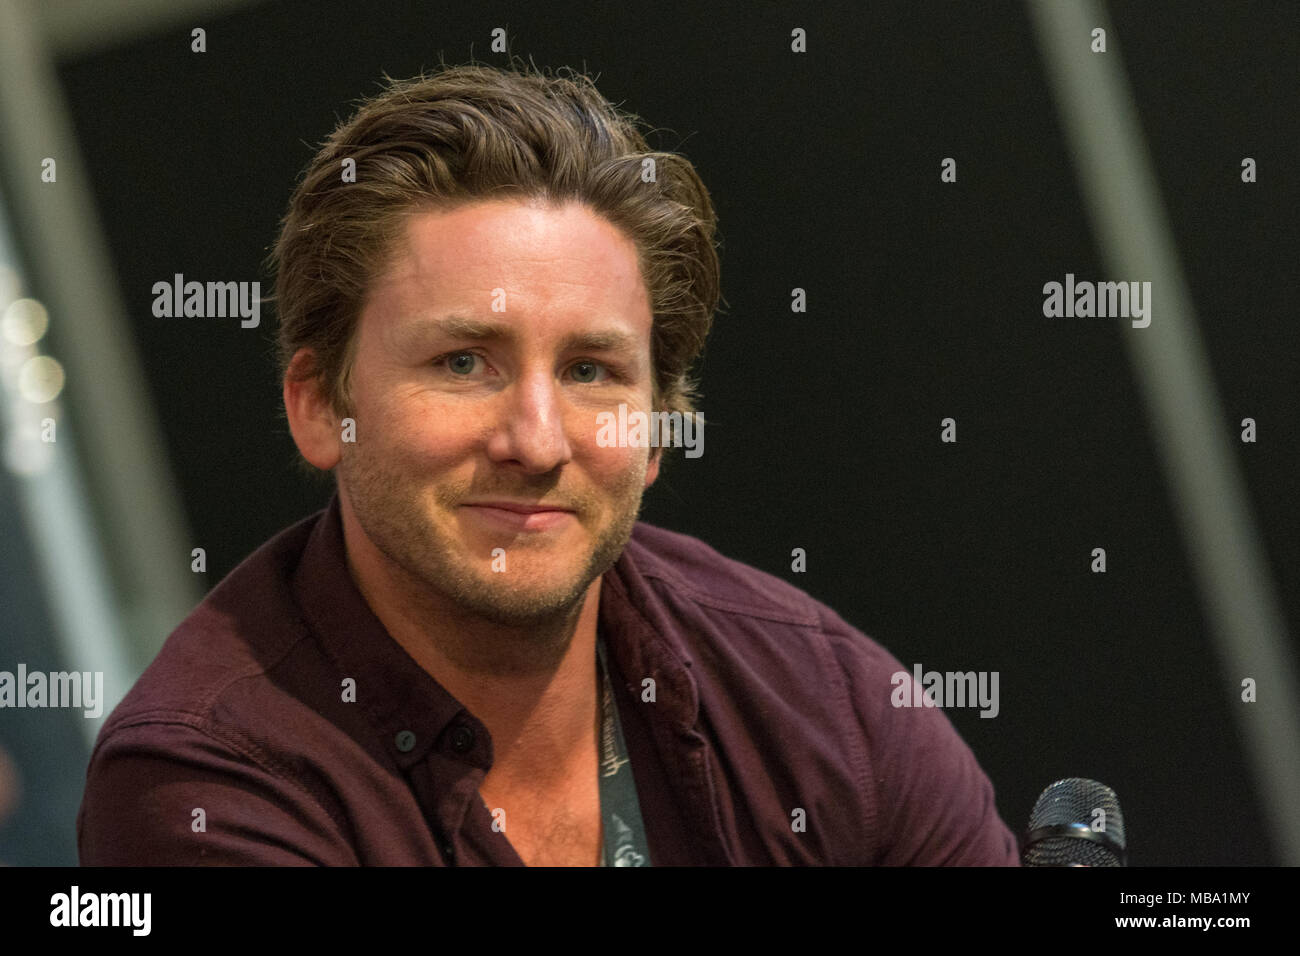 DORTMUND, GERMANY - APRIL 8: Actor Jesse Moss (Tucker & Dale vs Evil, Final Destination) at Weekend of Hell, a two day (April 7-8 2018) horror-themed fan convention. Credit: Markus Wissmann/Alamy Live News - Stock Image